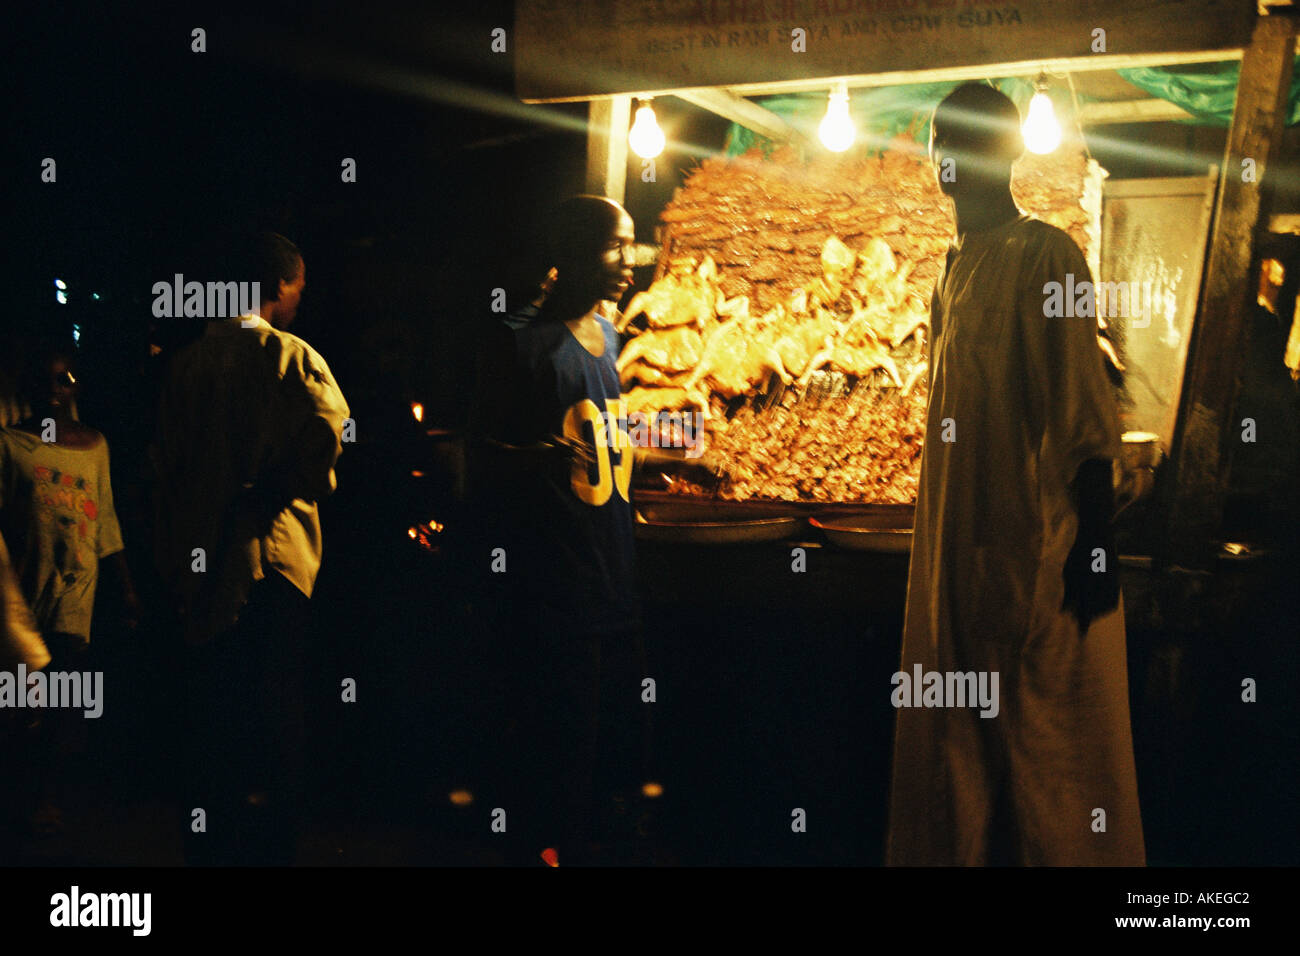 A suya (Barbecue) Spot in Obalende Lagos state. Selling food till late into night.t. - Stock Image